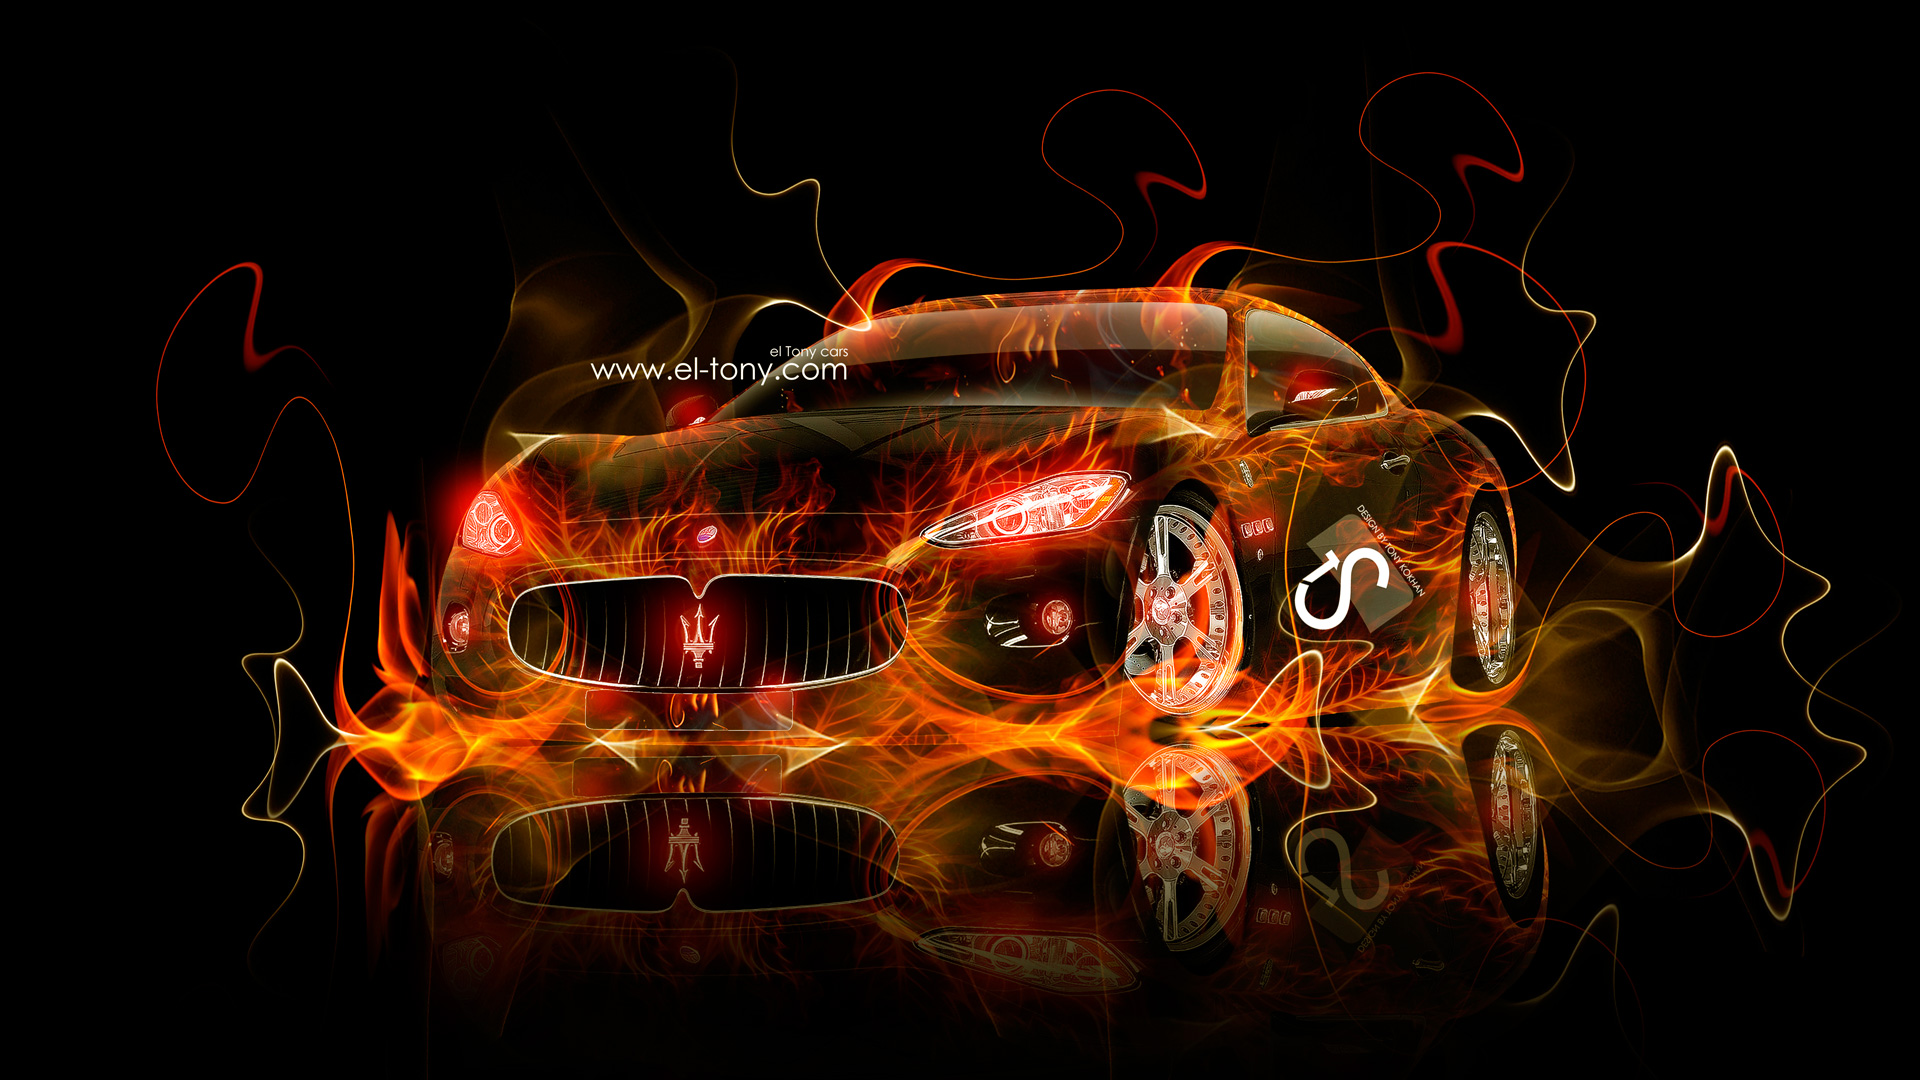 Maserati Granturismo Fire Car 2013 HD Wallpapers design by Tony Kokhan 1920x1080